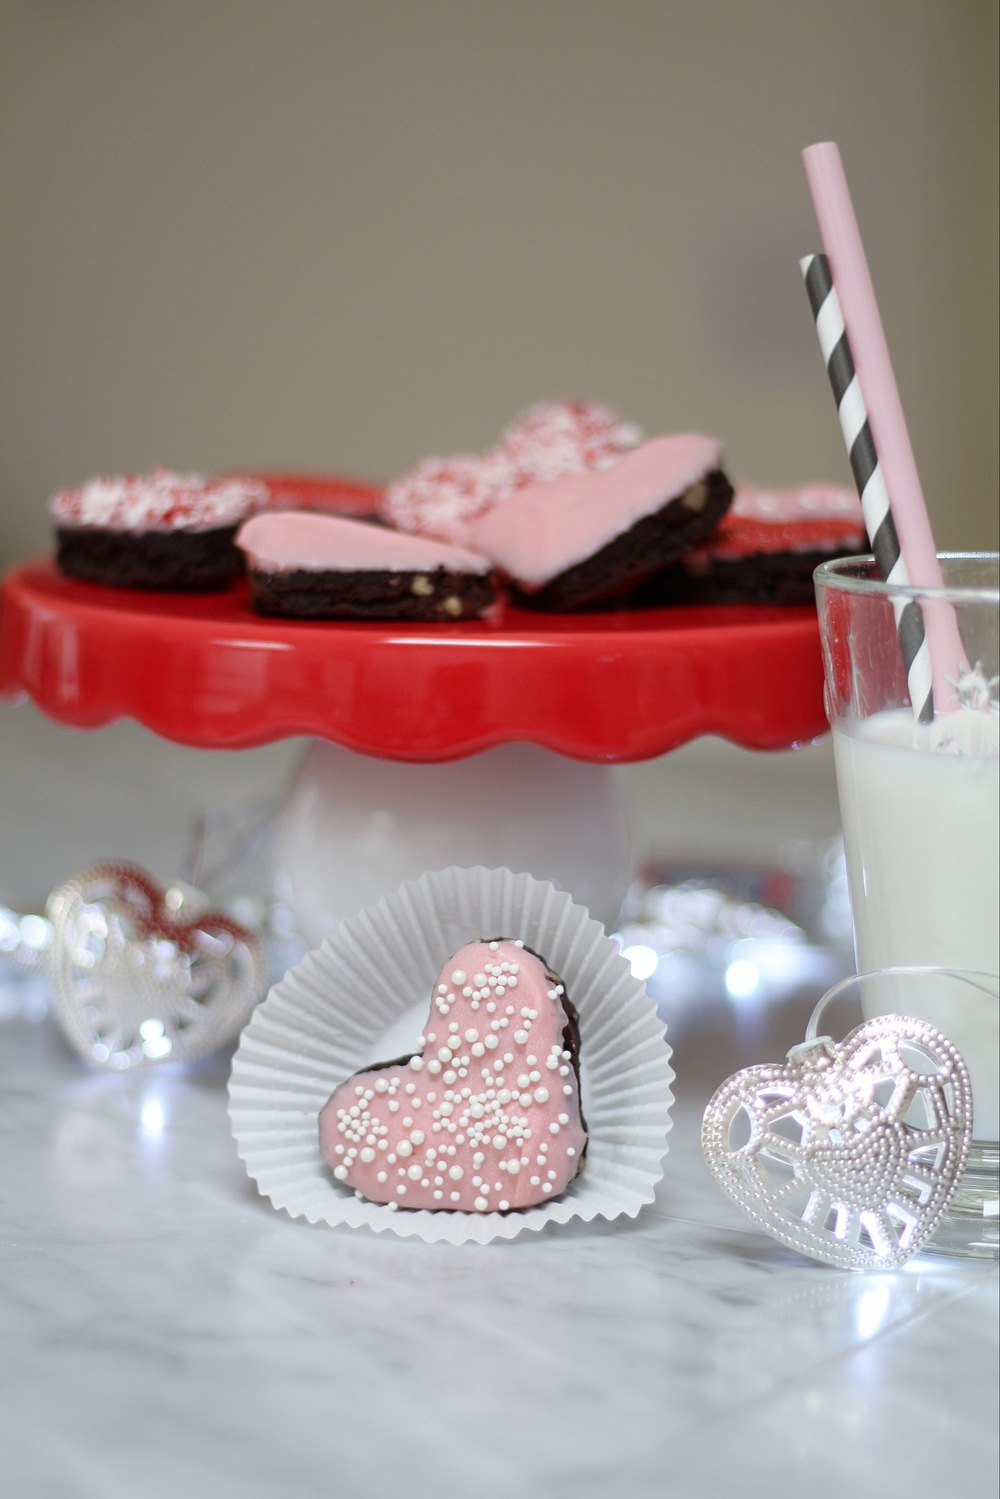 This recipe for Valentine's Day brownies is one of my very favorites! Learn how to bake these Valentine's Day brownies with Zevy Joy. | www.boxwoodavenue.com #valentinesdaybrownies #brownies #decoratedbrownies